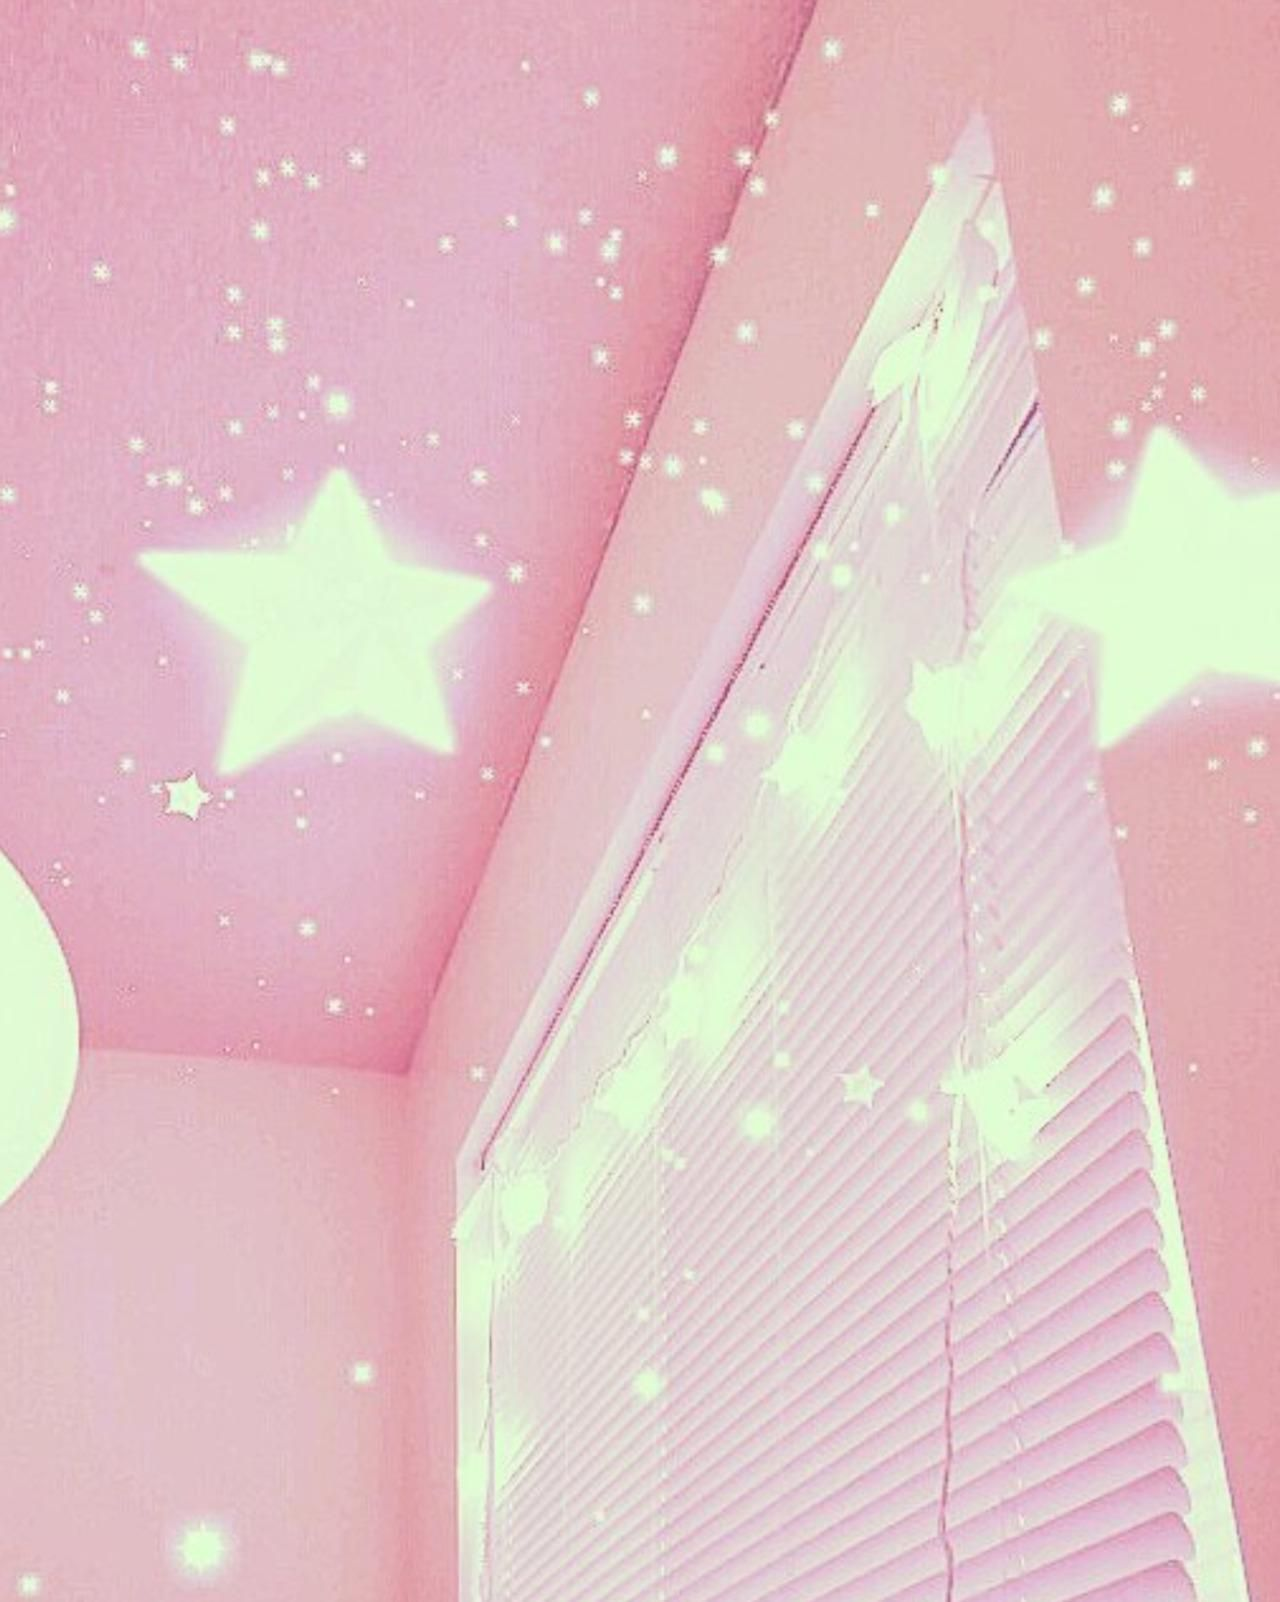 1280x1602 Pink Aesthetic Tumblr Wallpaper Imageslist Info Pink Aesthetic Pastel Pink Aesthetic Pink Tumblr Aesthetic